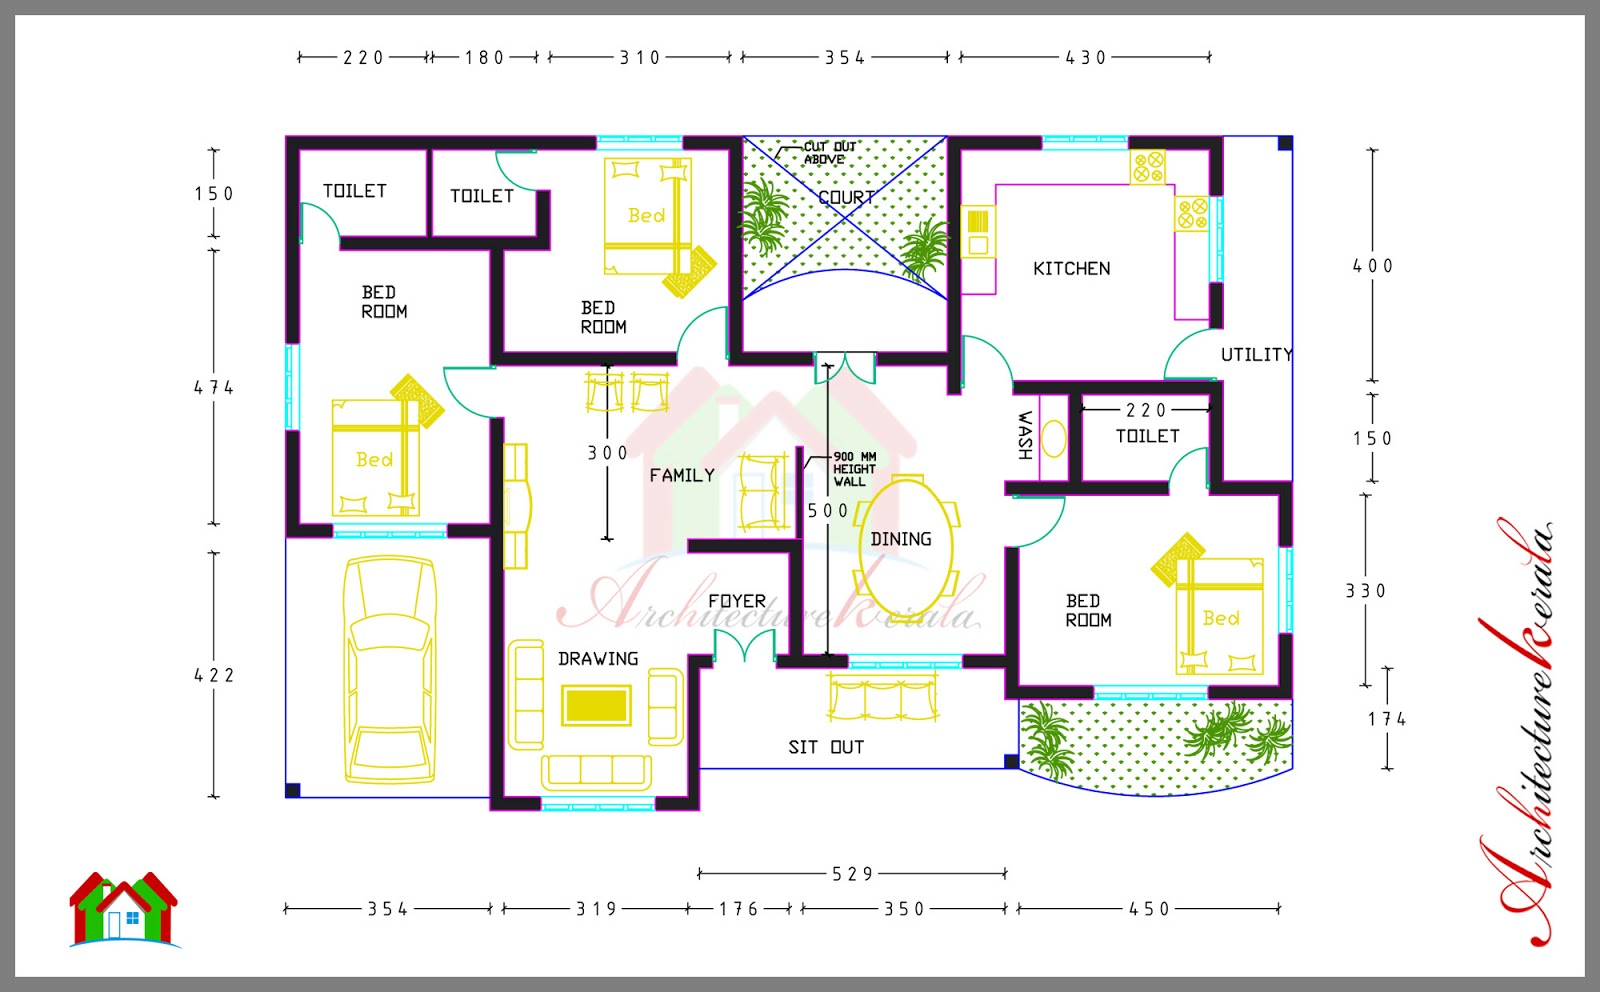 Plan For 4 Bedroom House In Kerala